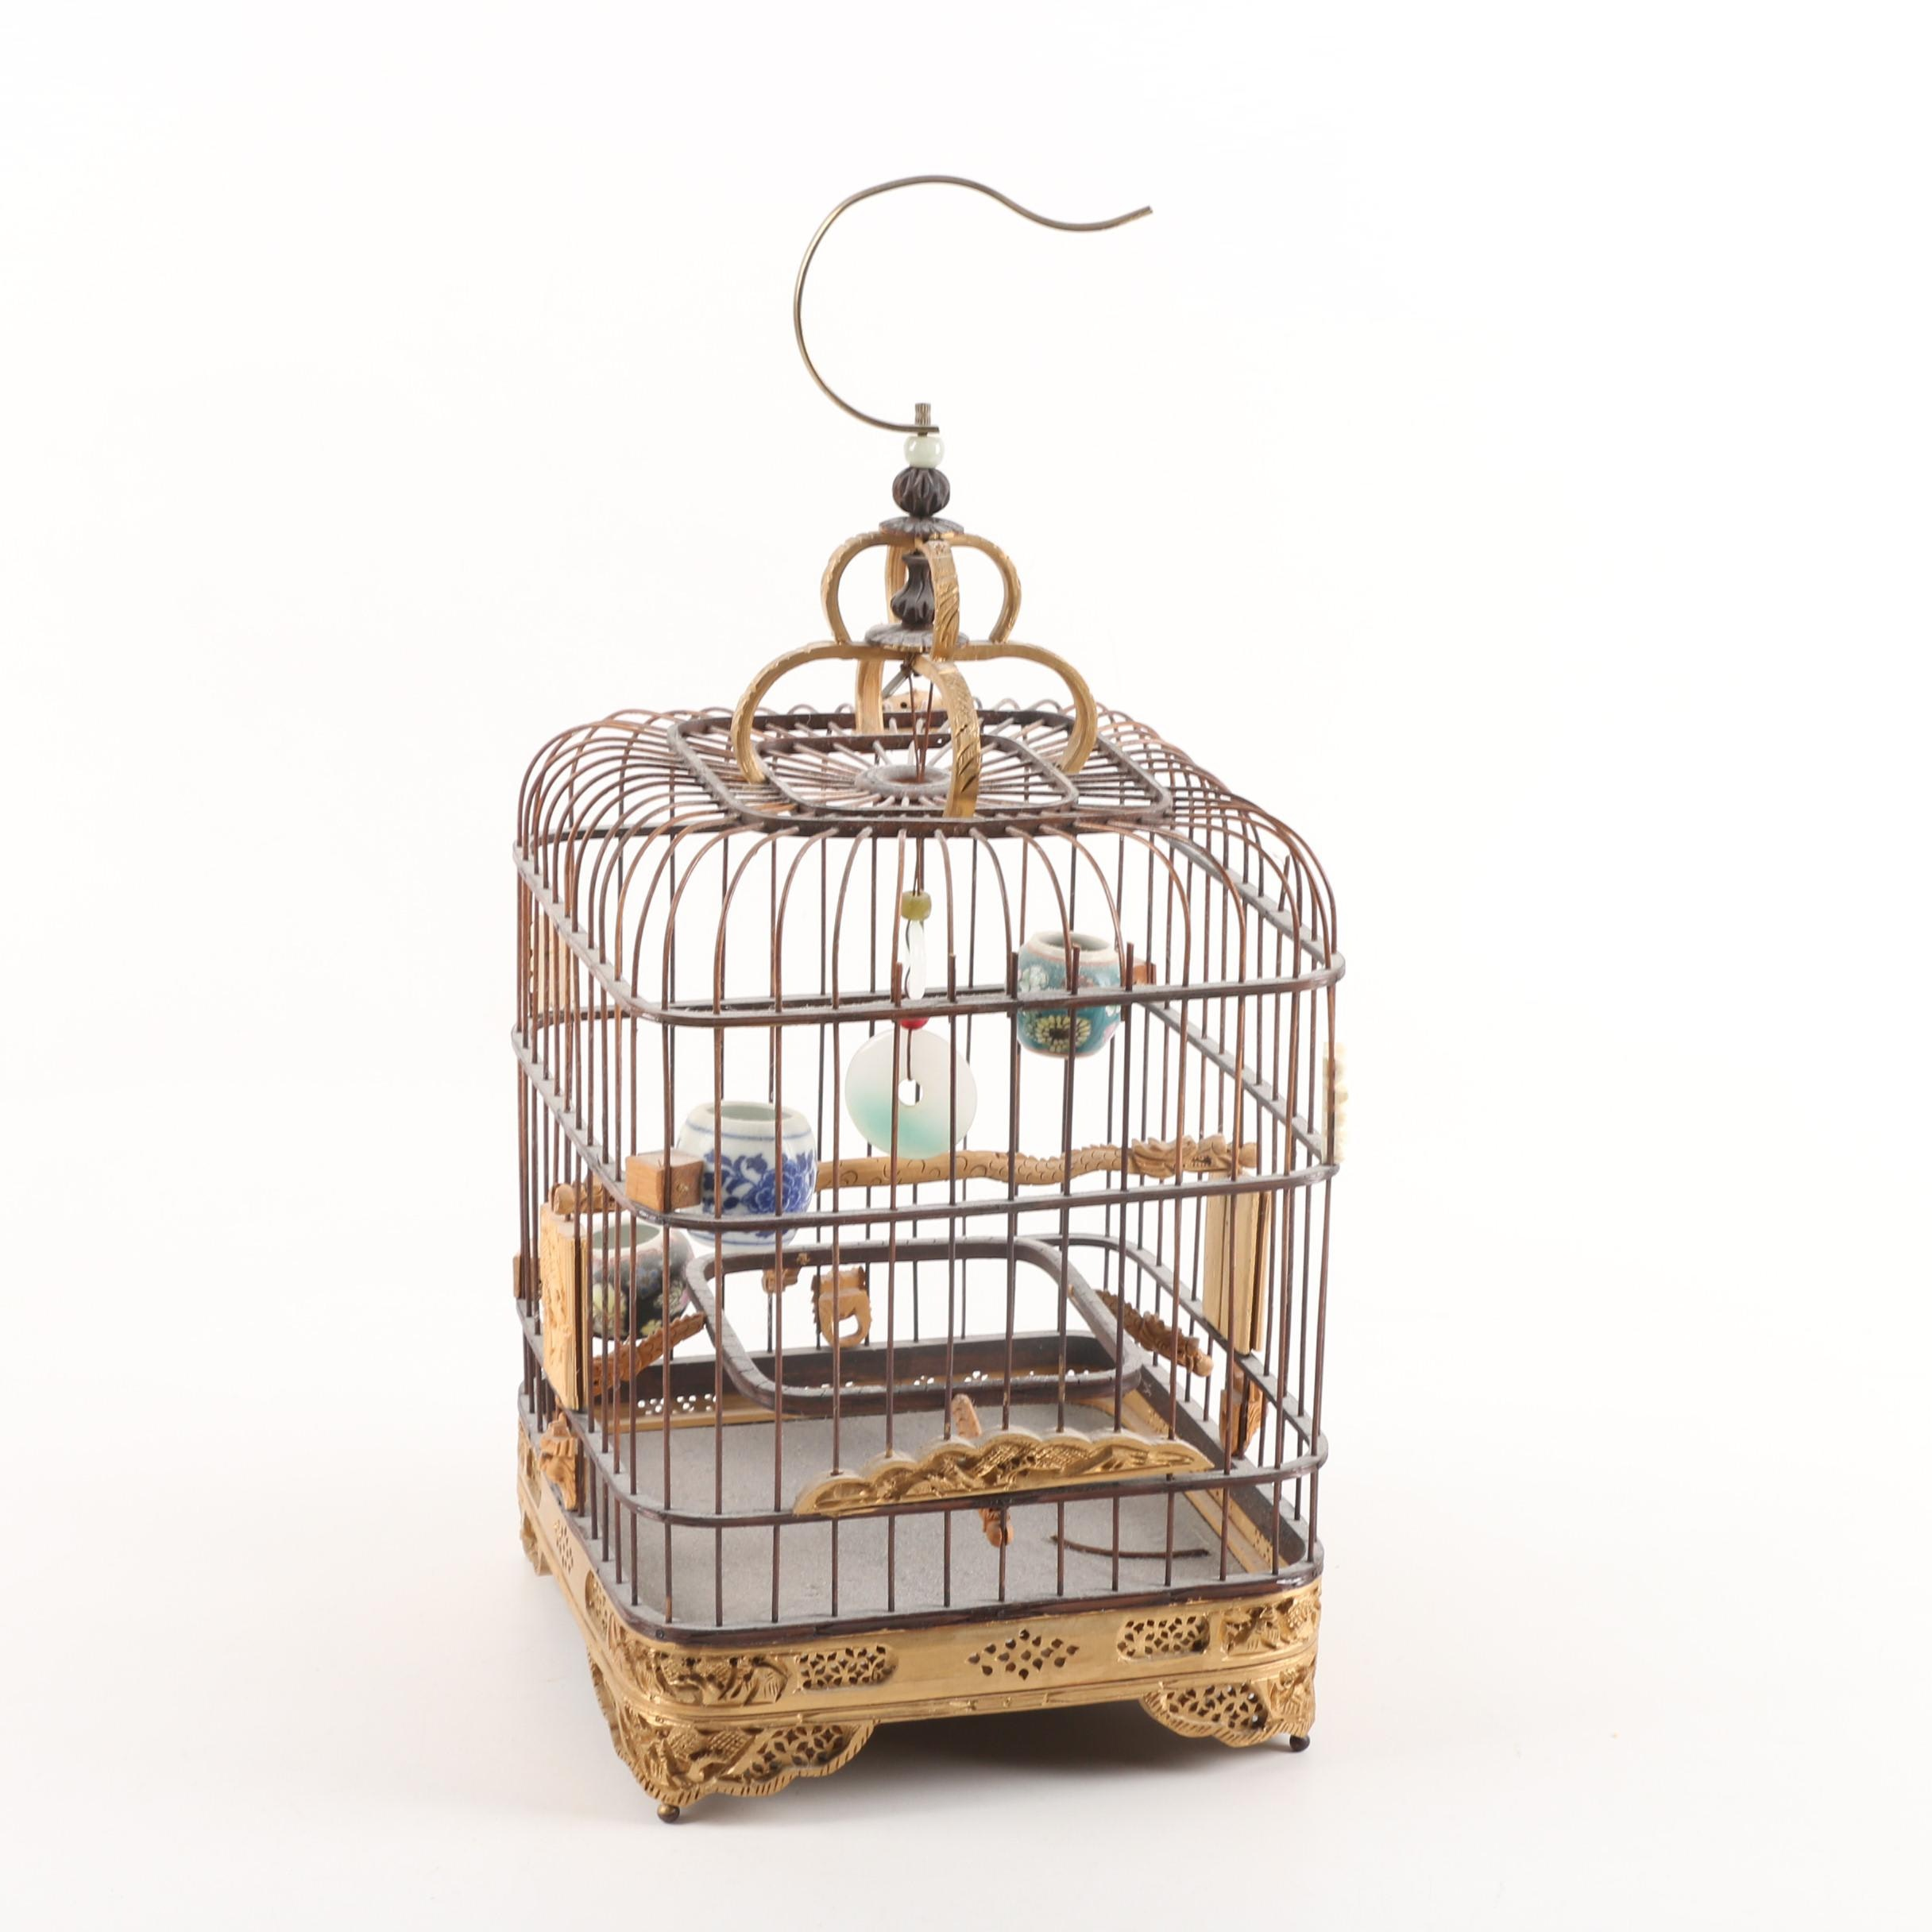 Chinese Giltwood and Metal Birdcage with Jadeite Dyed Glass Accent